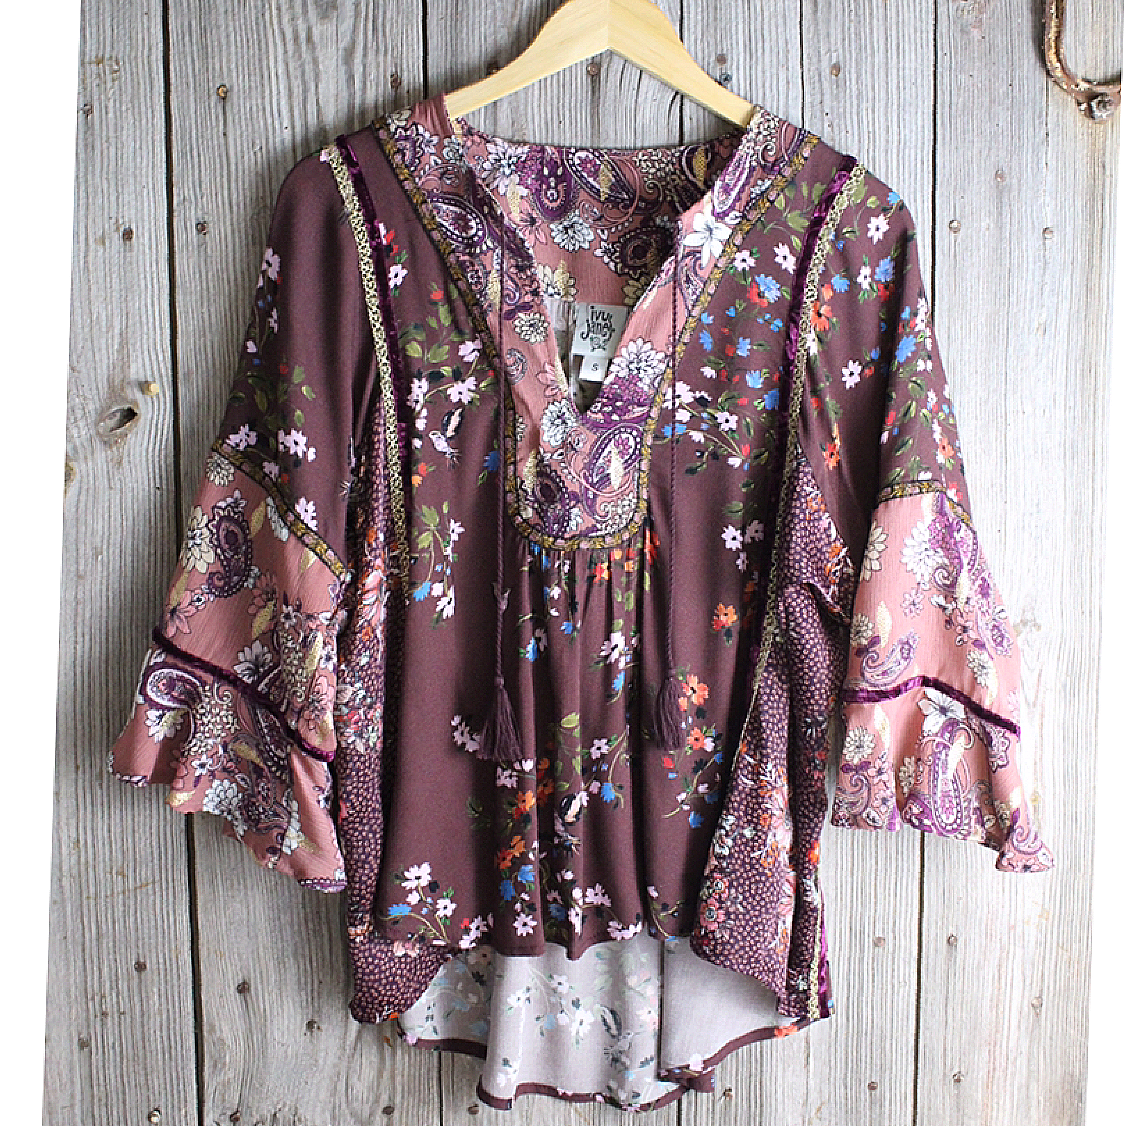 Mixed Floral Blouse from Ivy Jane